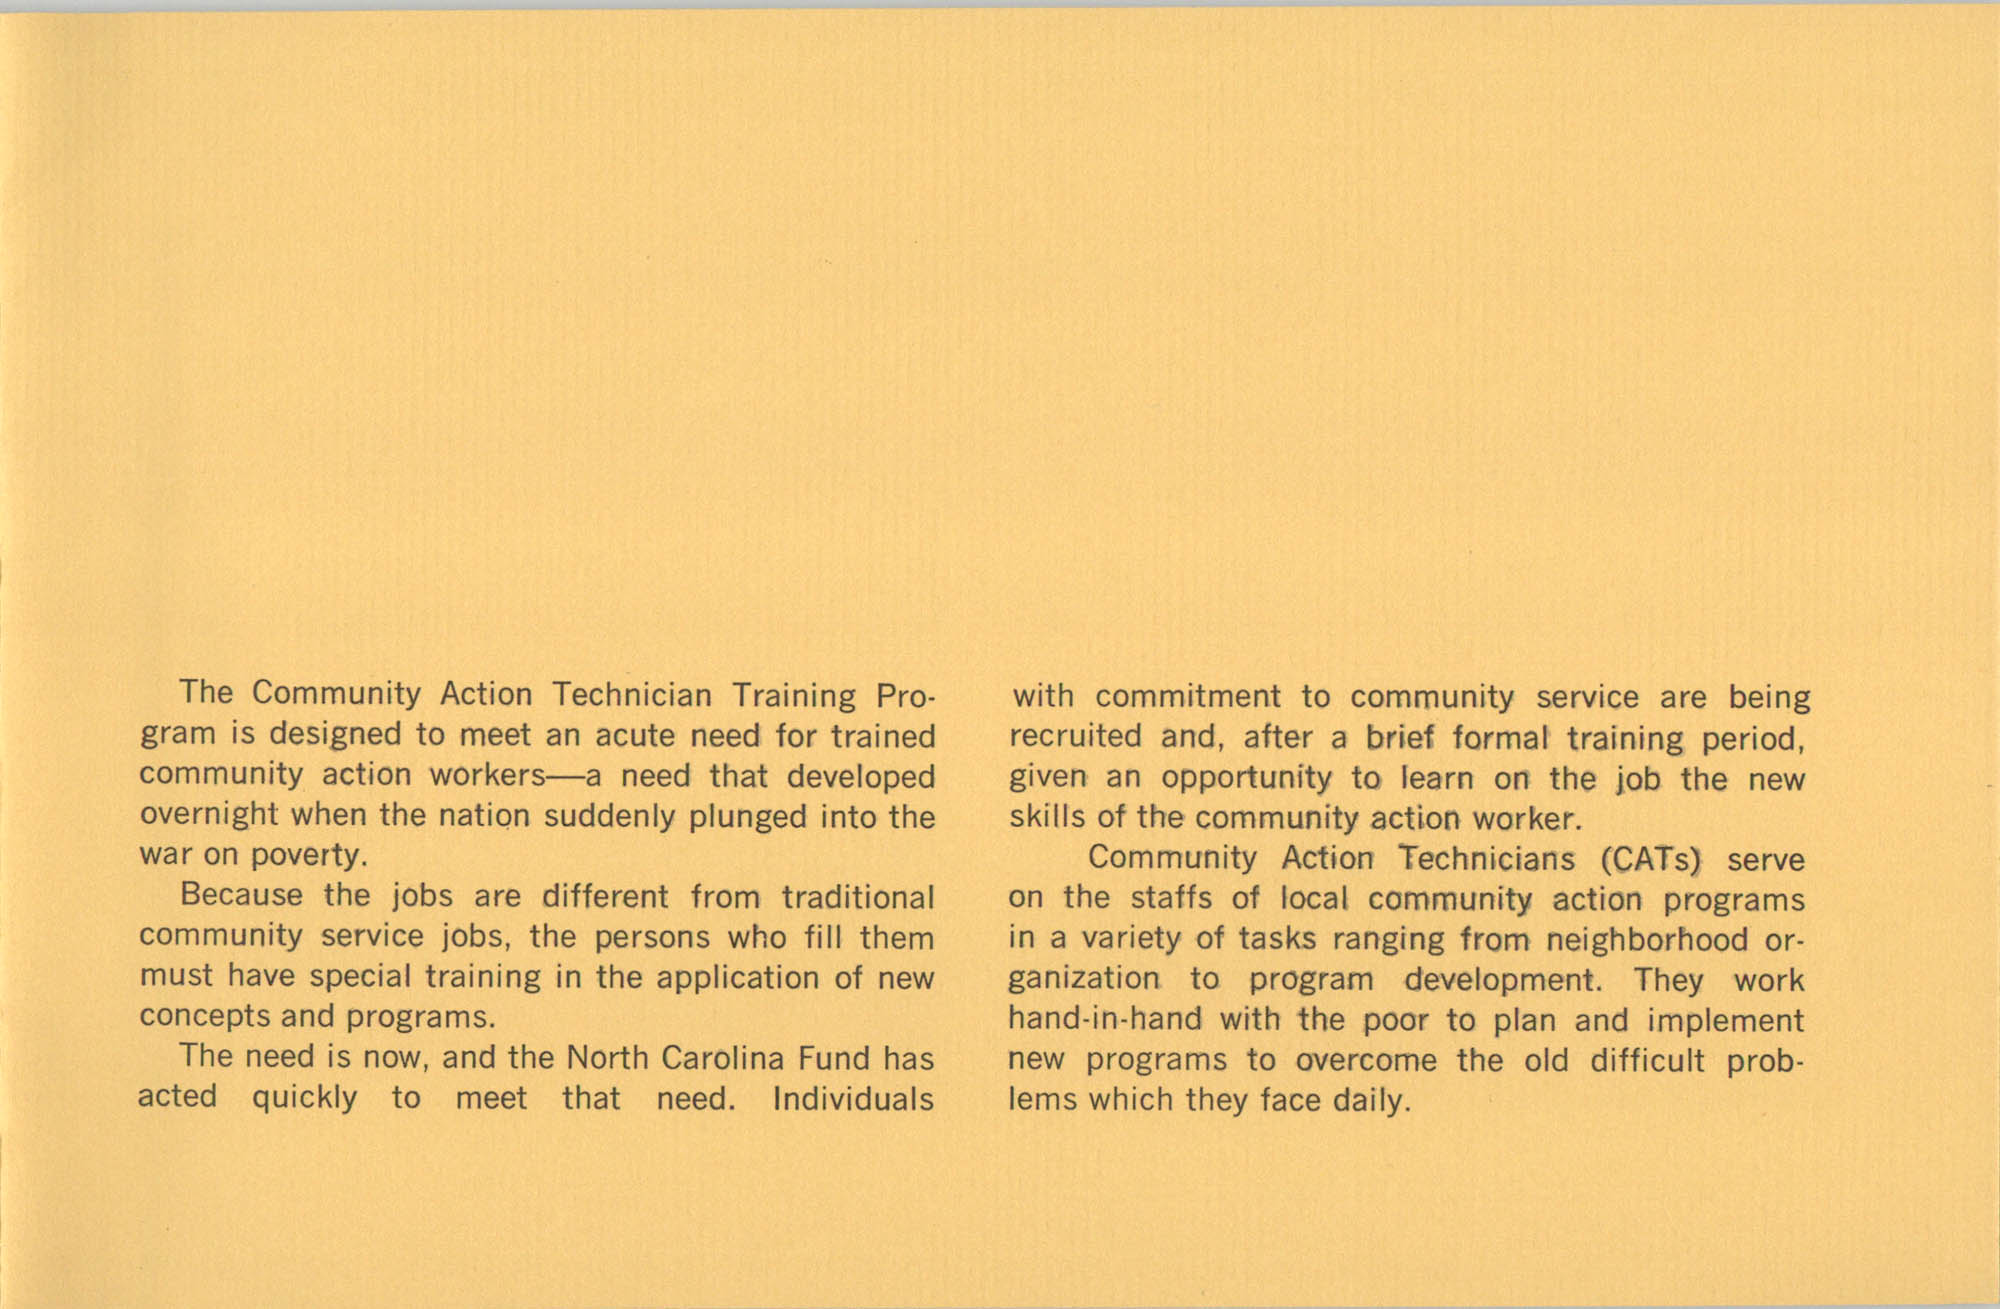 Community Action Technician Training Program, Page 15